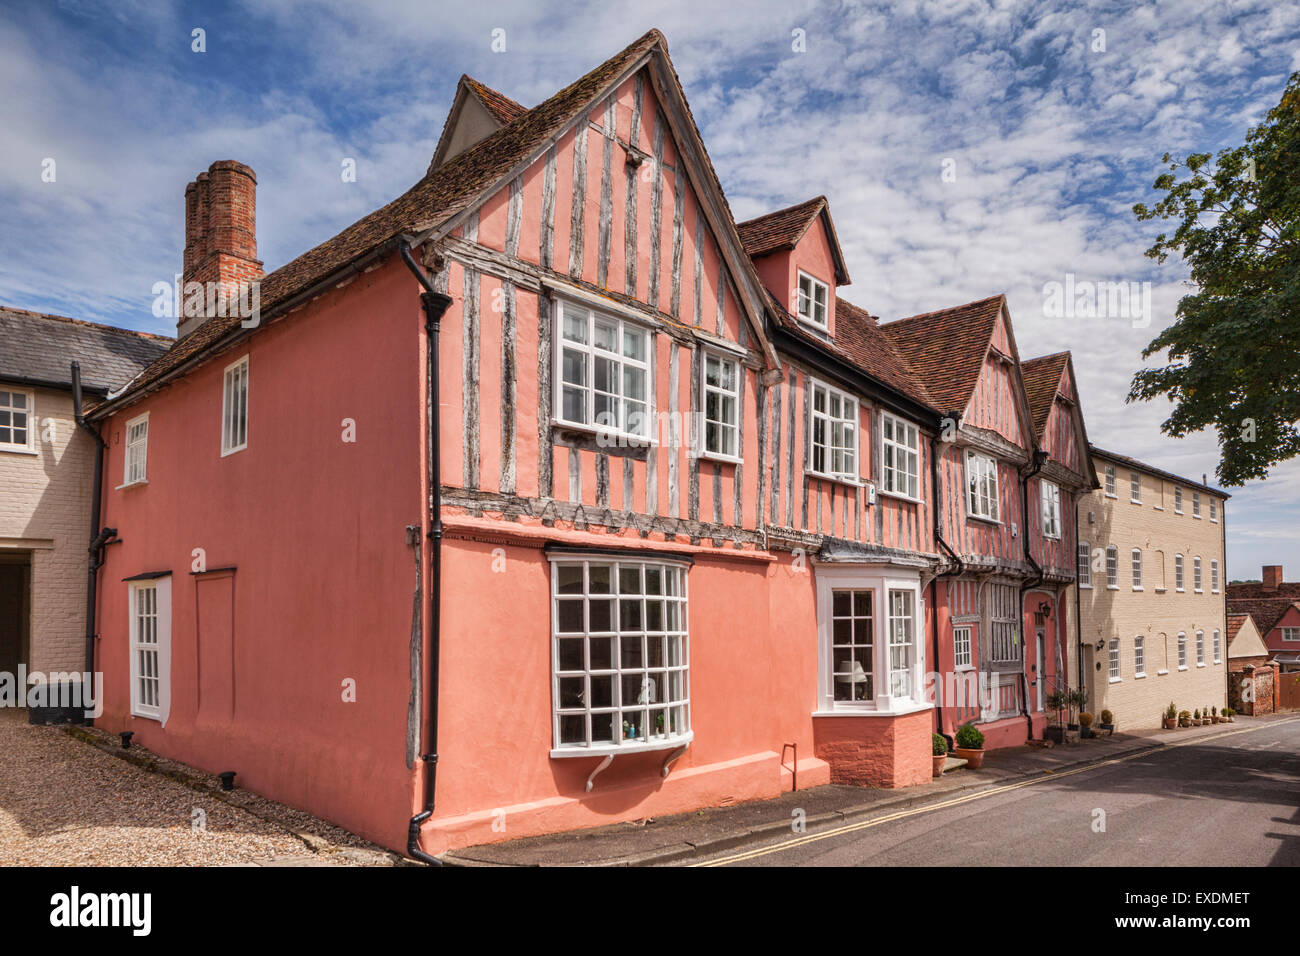 The Old Grammar School, Lavenham, which John Constable briefly attended, Lavenham, Suffolk, England - Stock Image